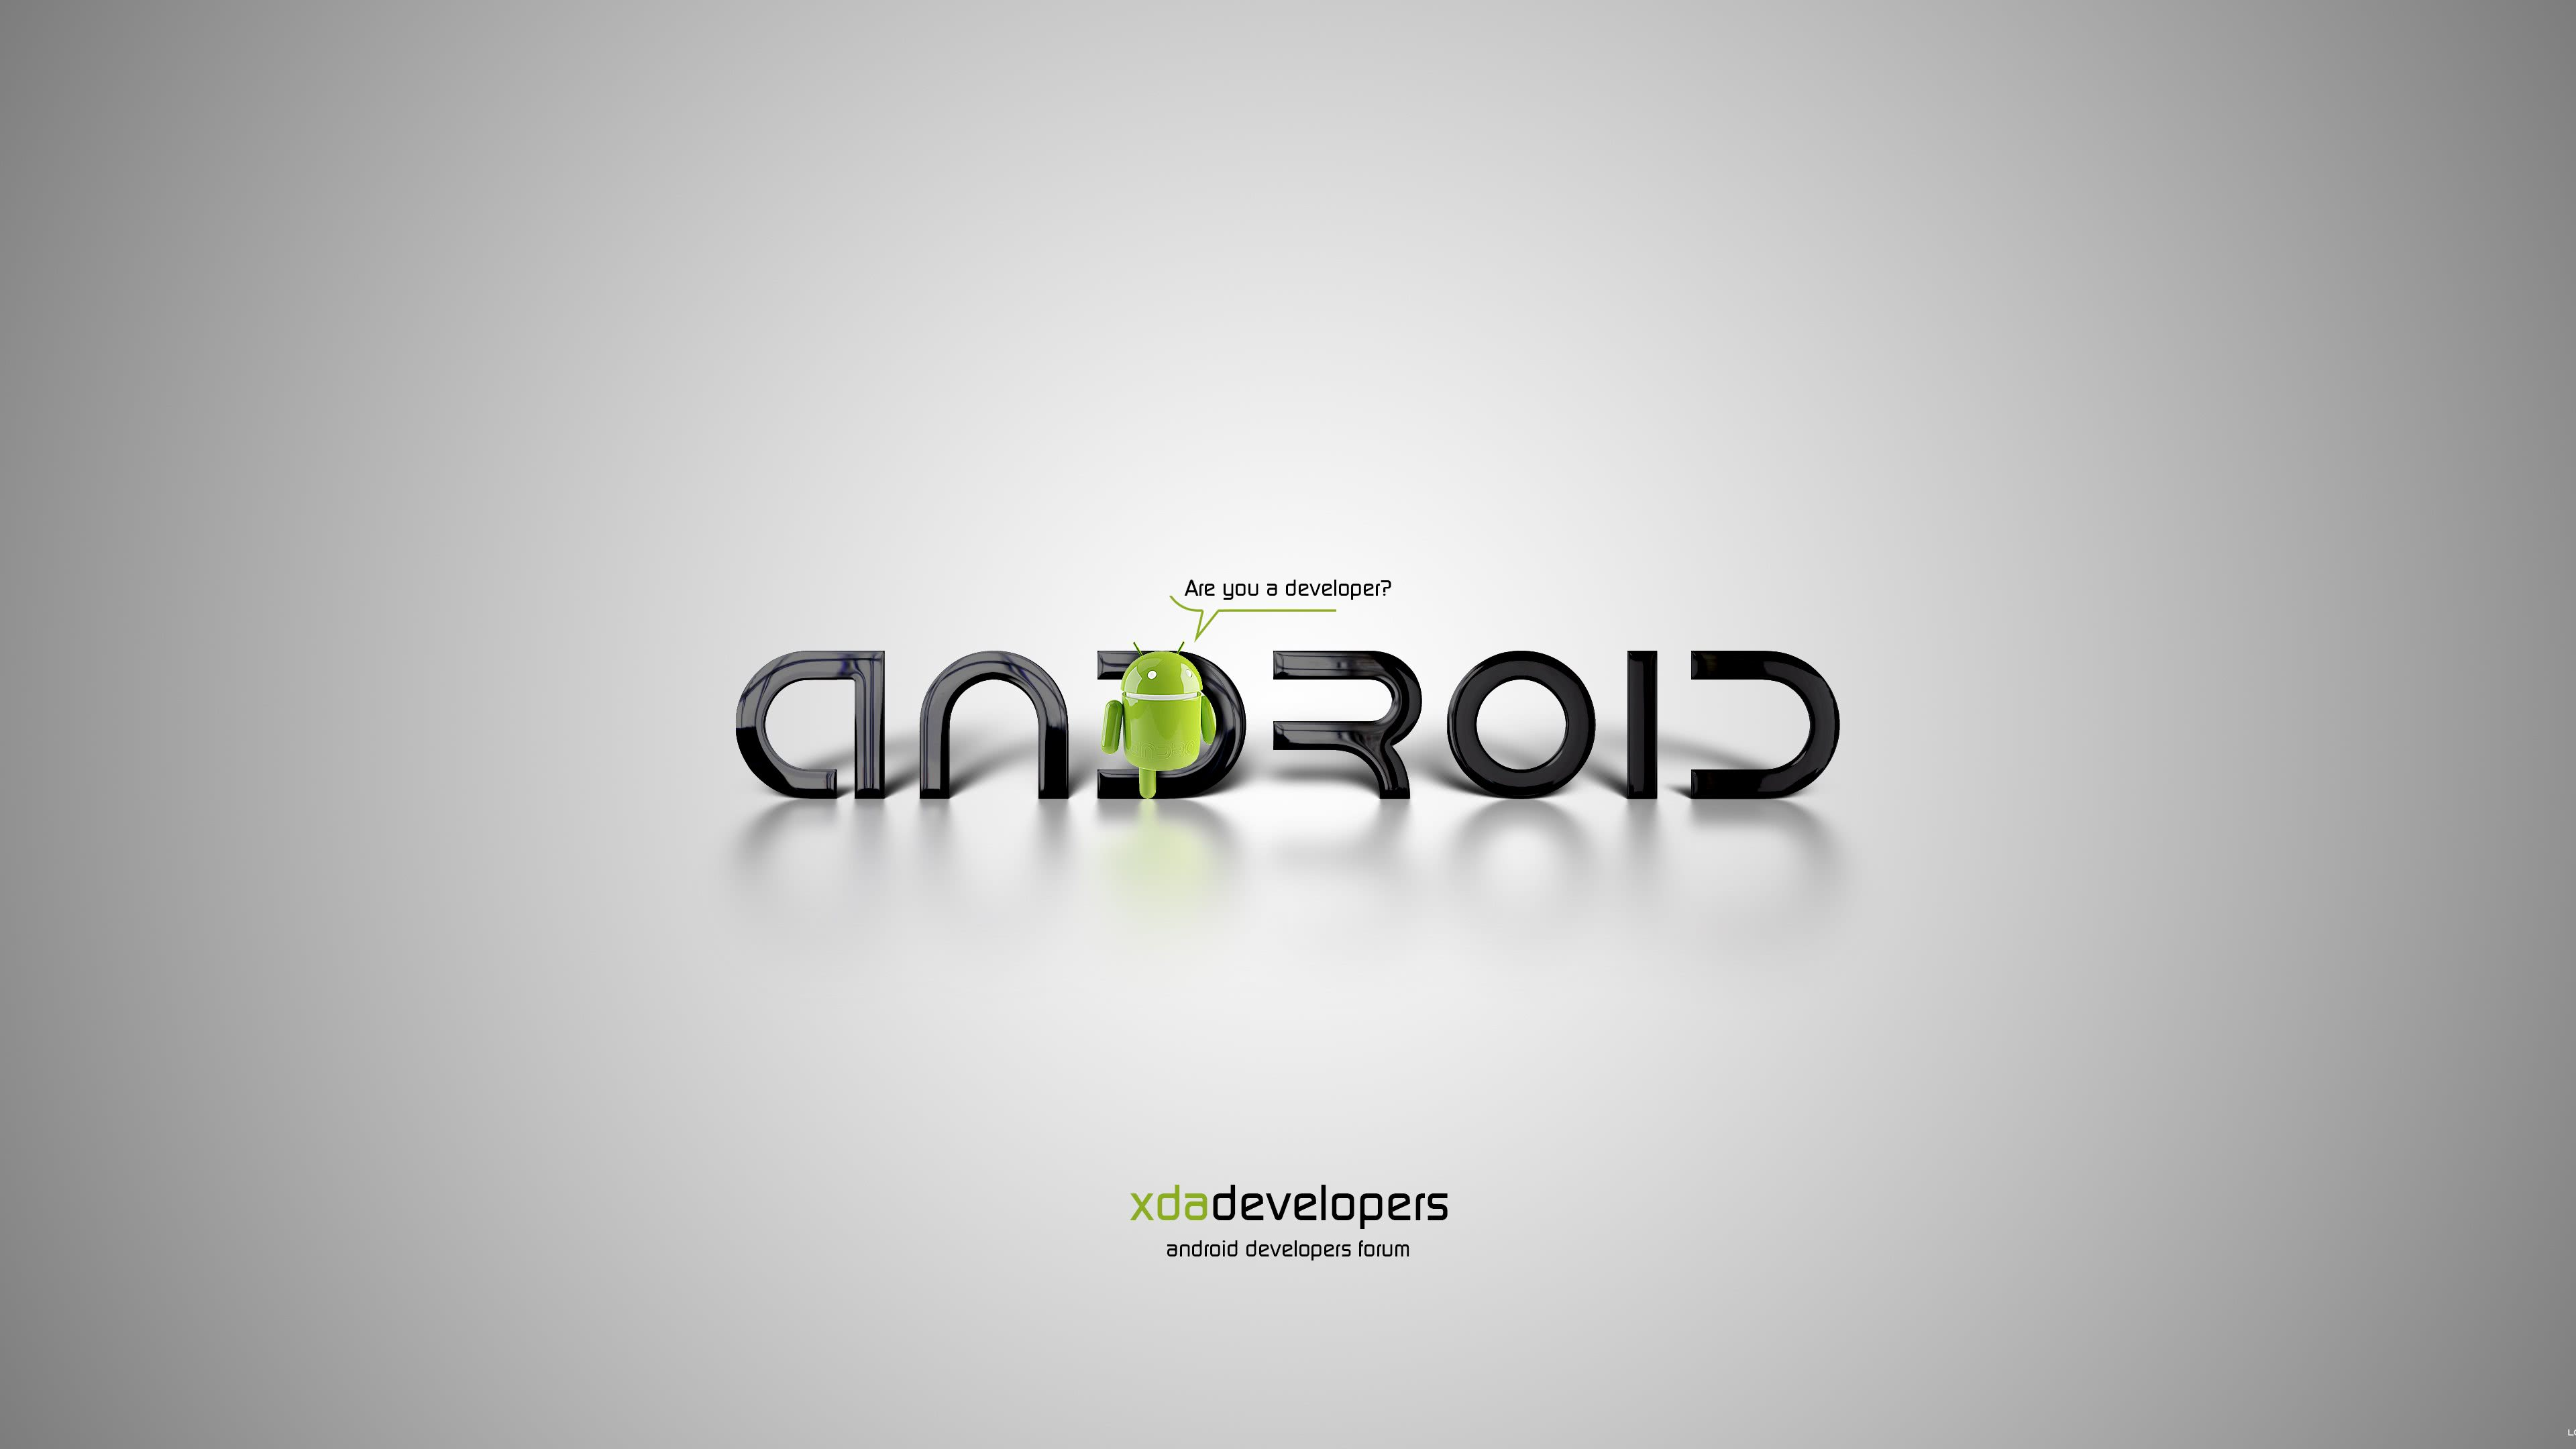 xda android developers forum rate wallpaper download image